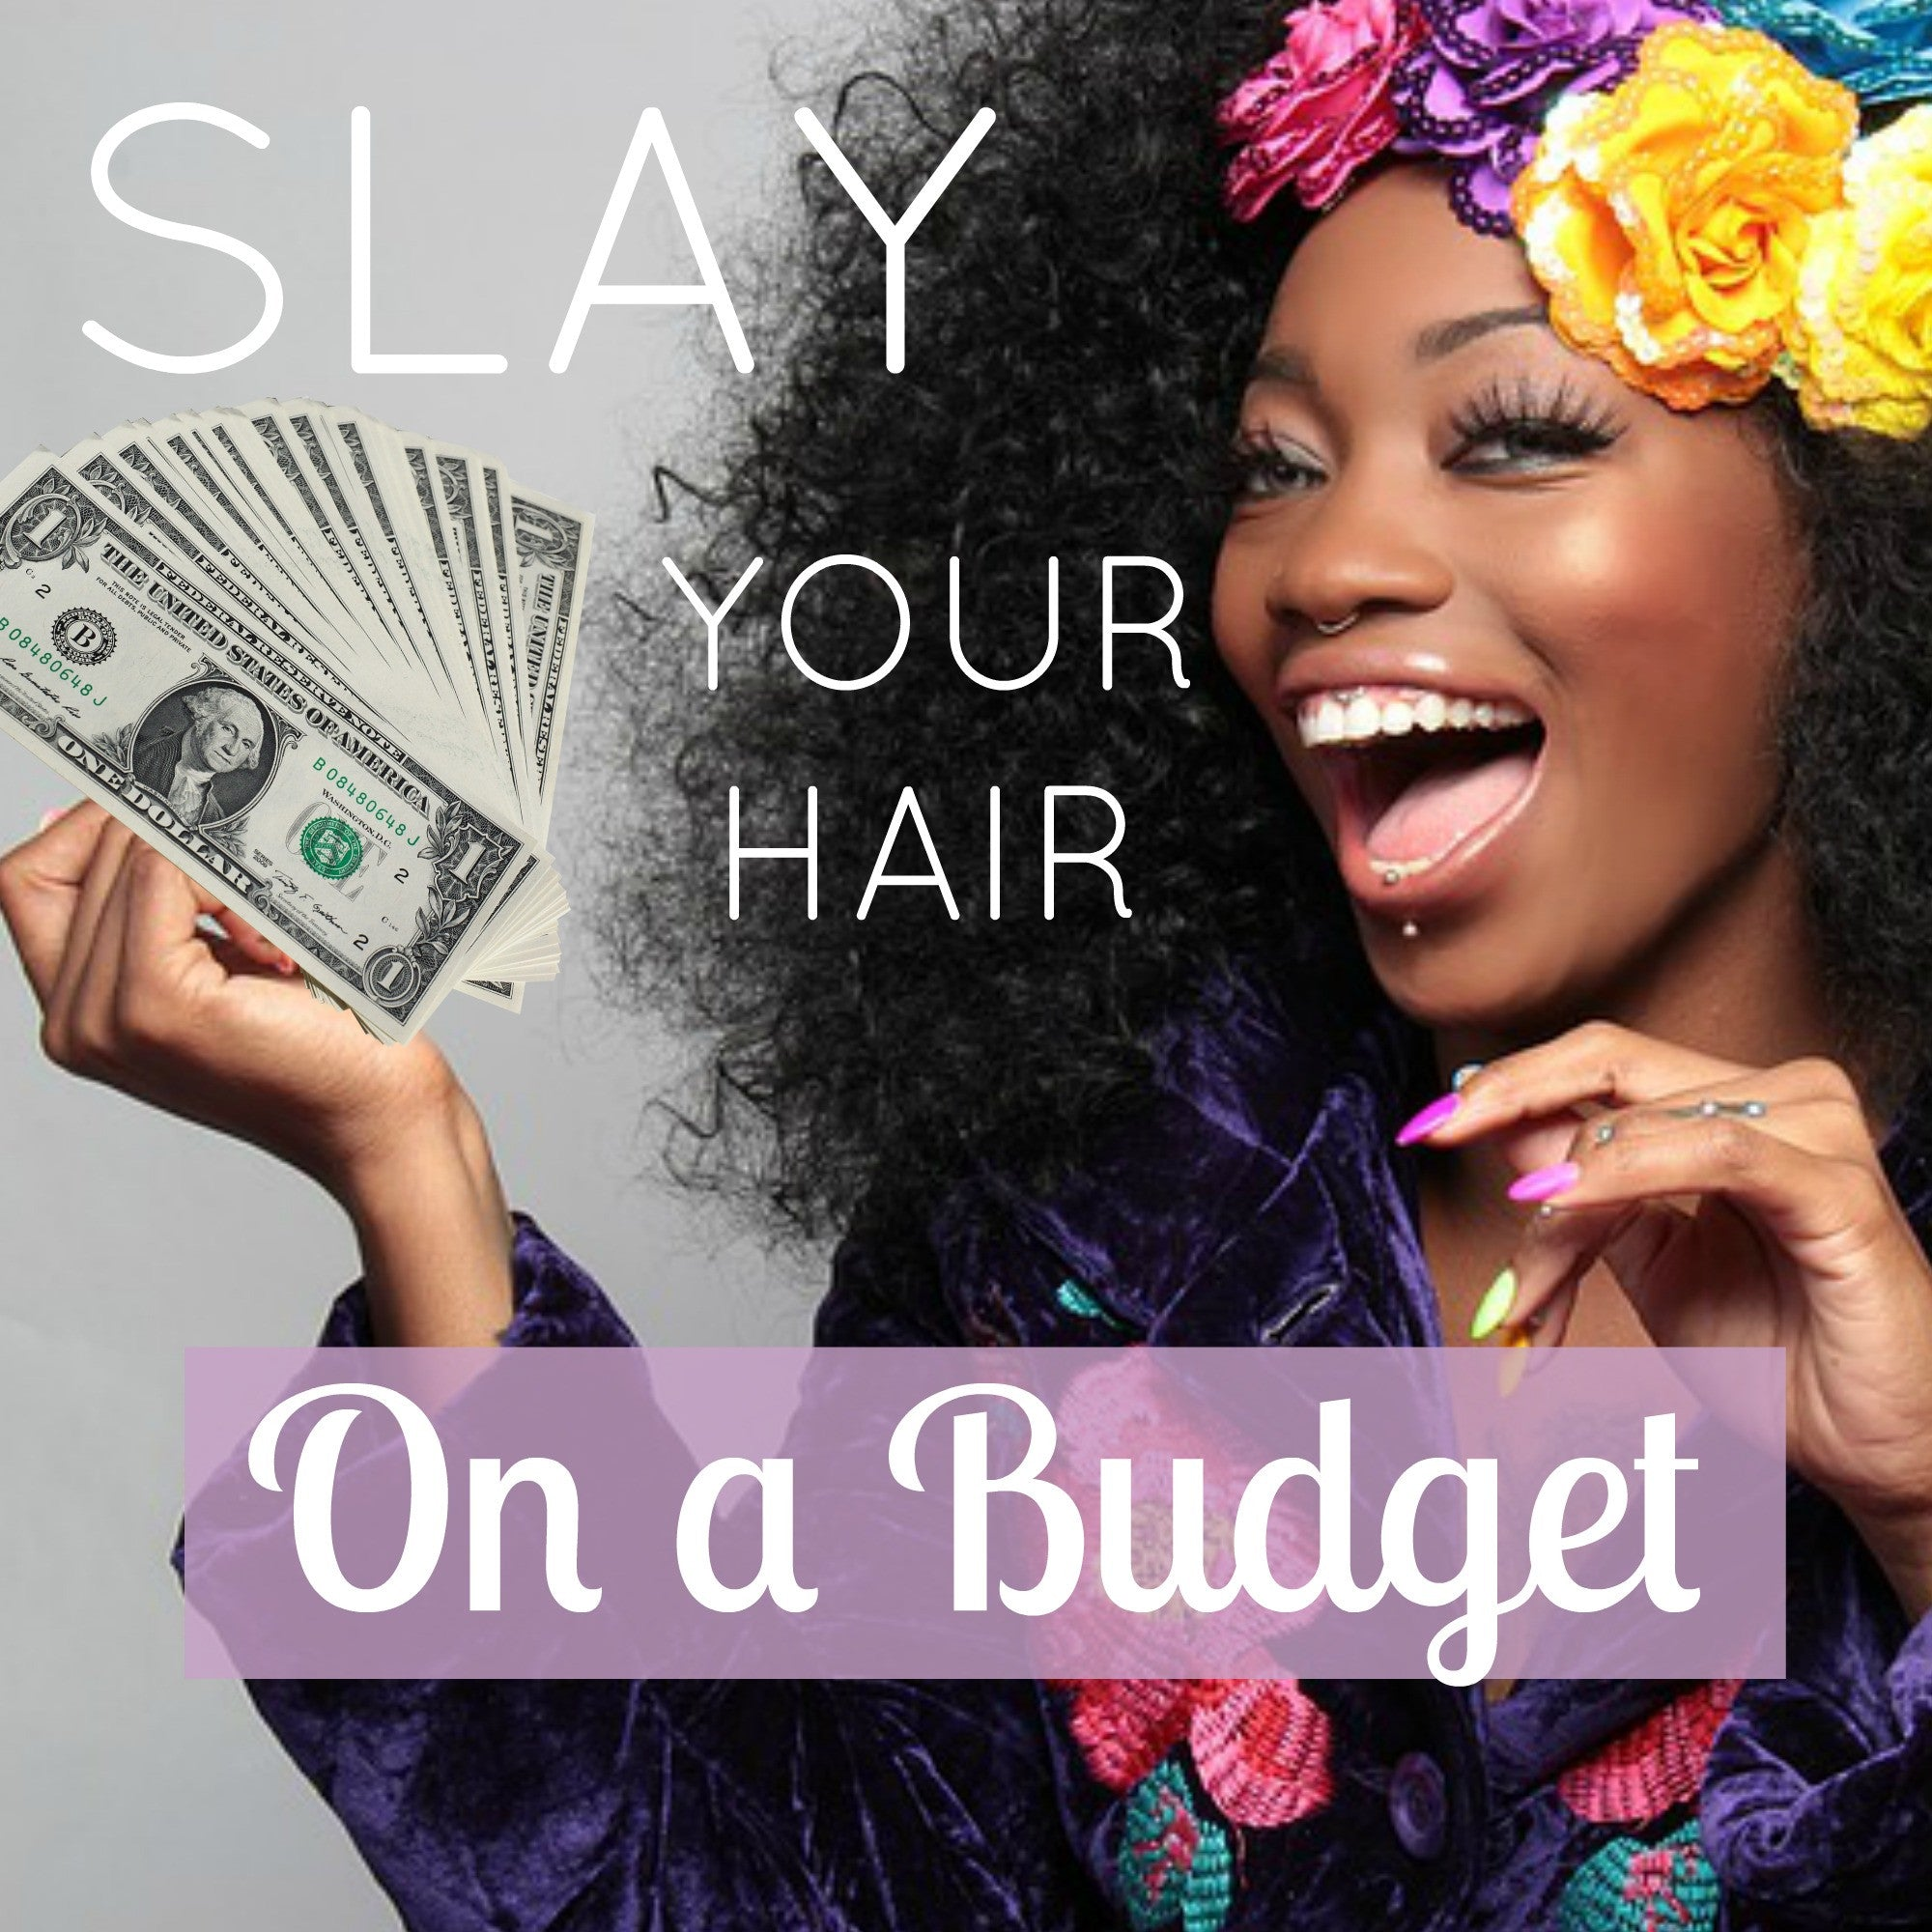 Secrets Revealed: Slay your Hair on a Budget